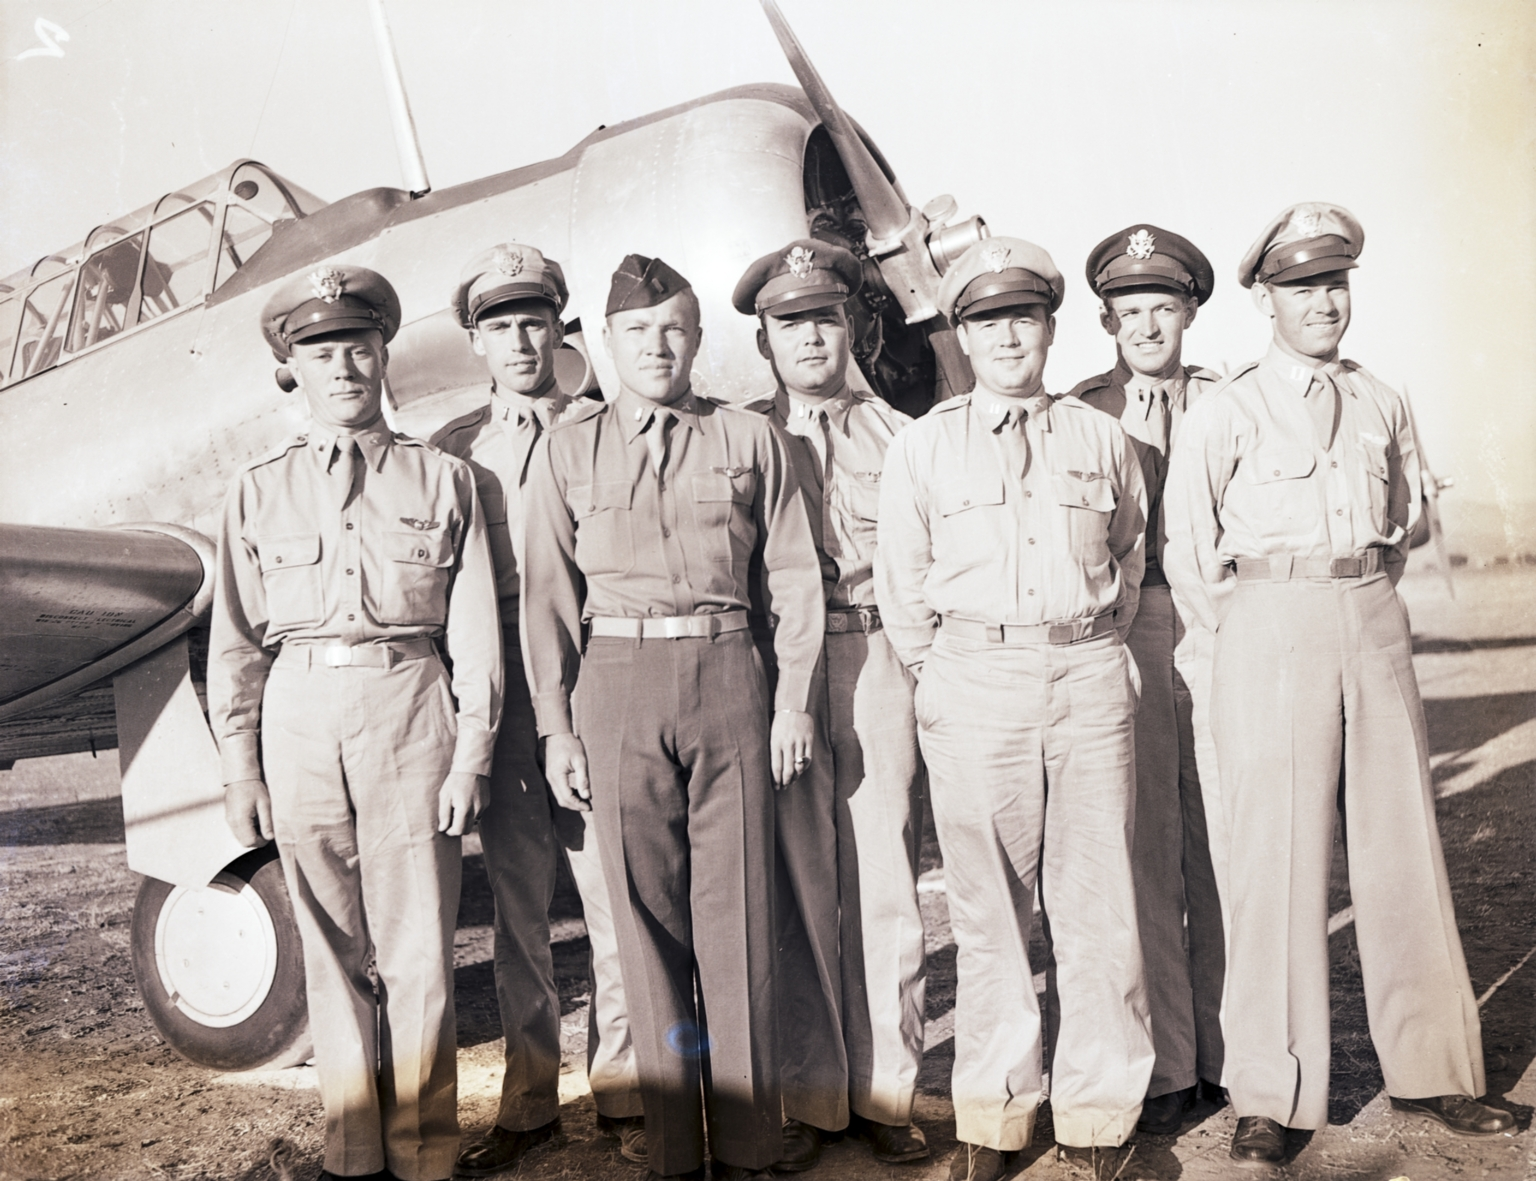 Flight instructors posing in front of a training aircraft, Hancock College of Aeronautics